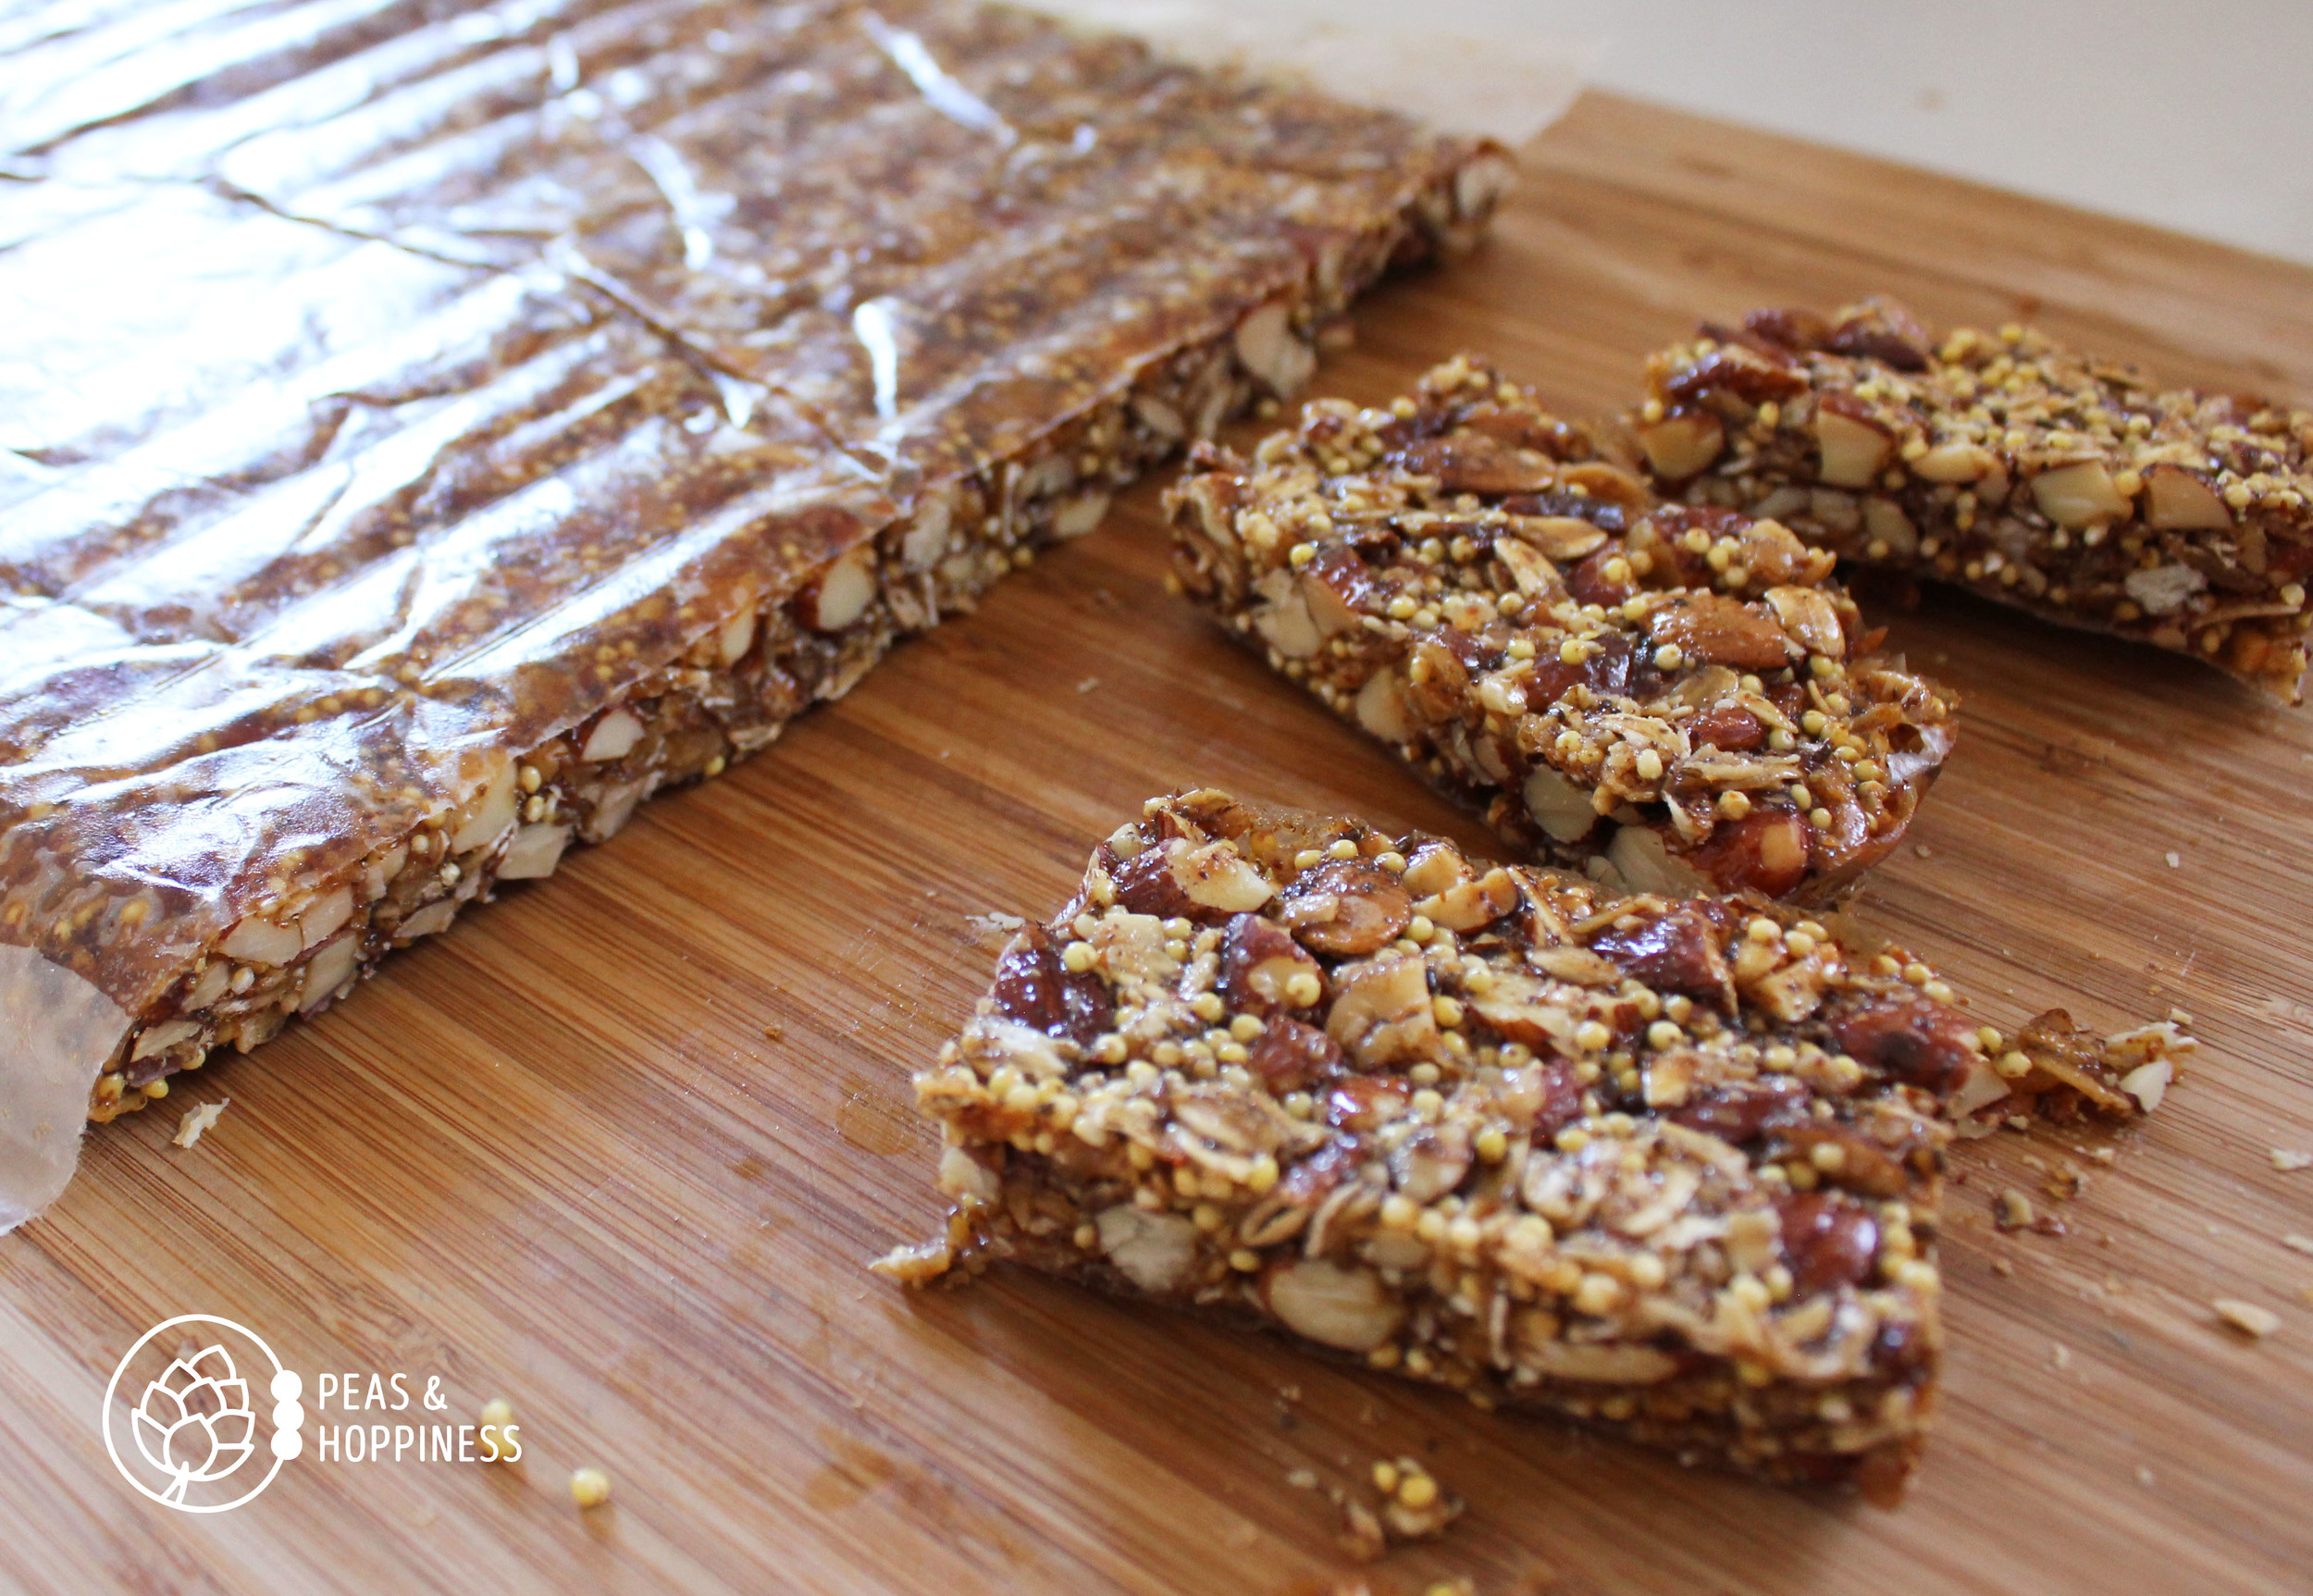 Savory Granola Bars from Peas and Hoppiness - www.peasandhoppiness.com